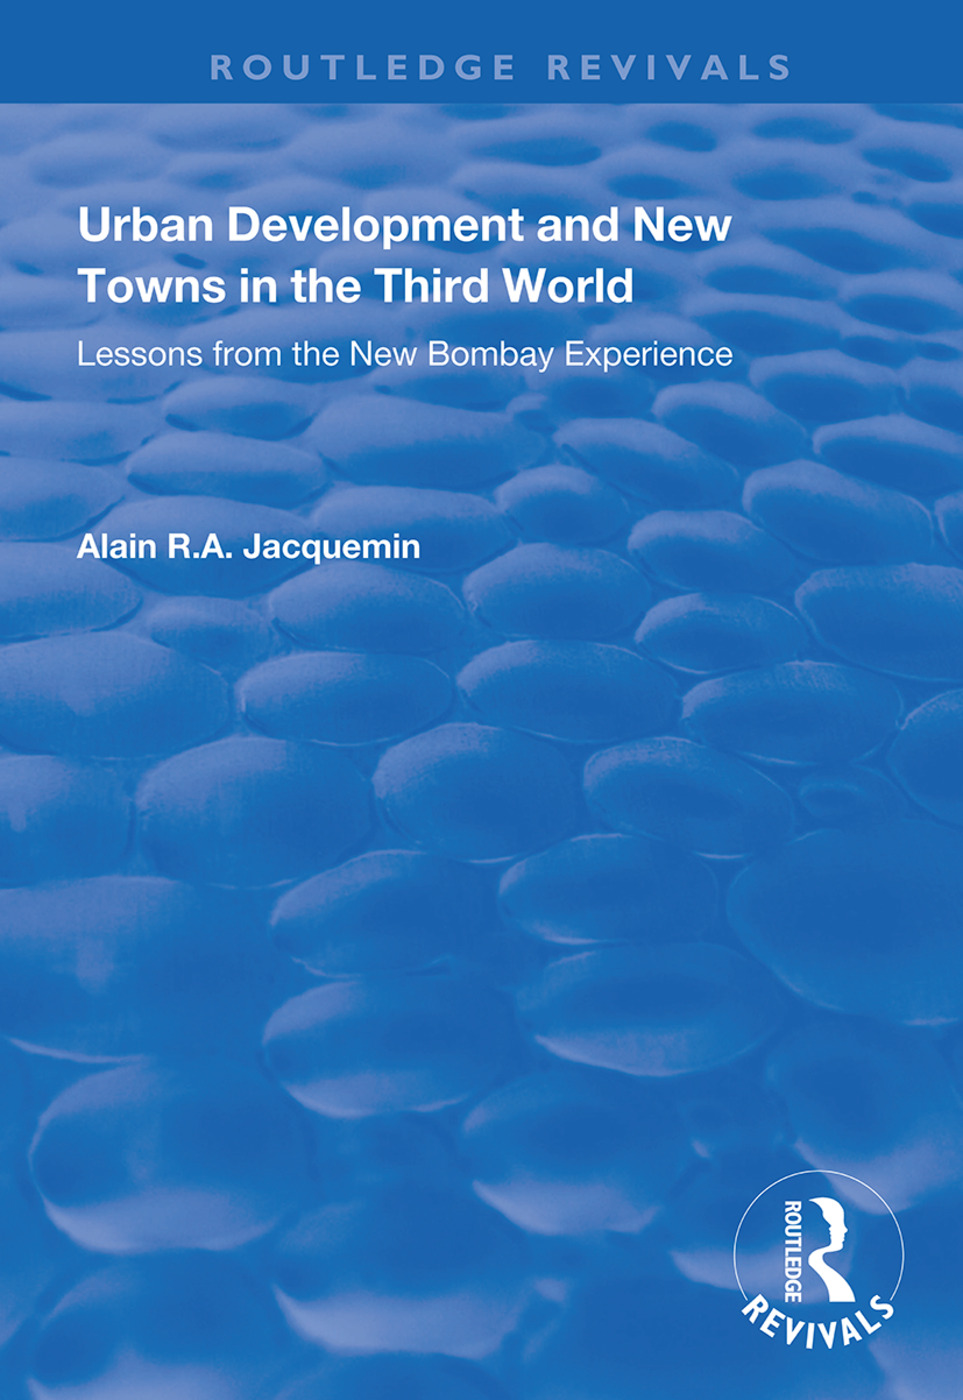 Urban Development and New Towns in the Third World: Lessons from the New Bombay Experience book cover